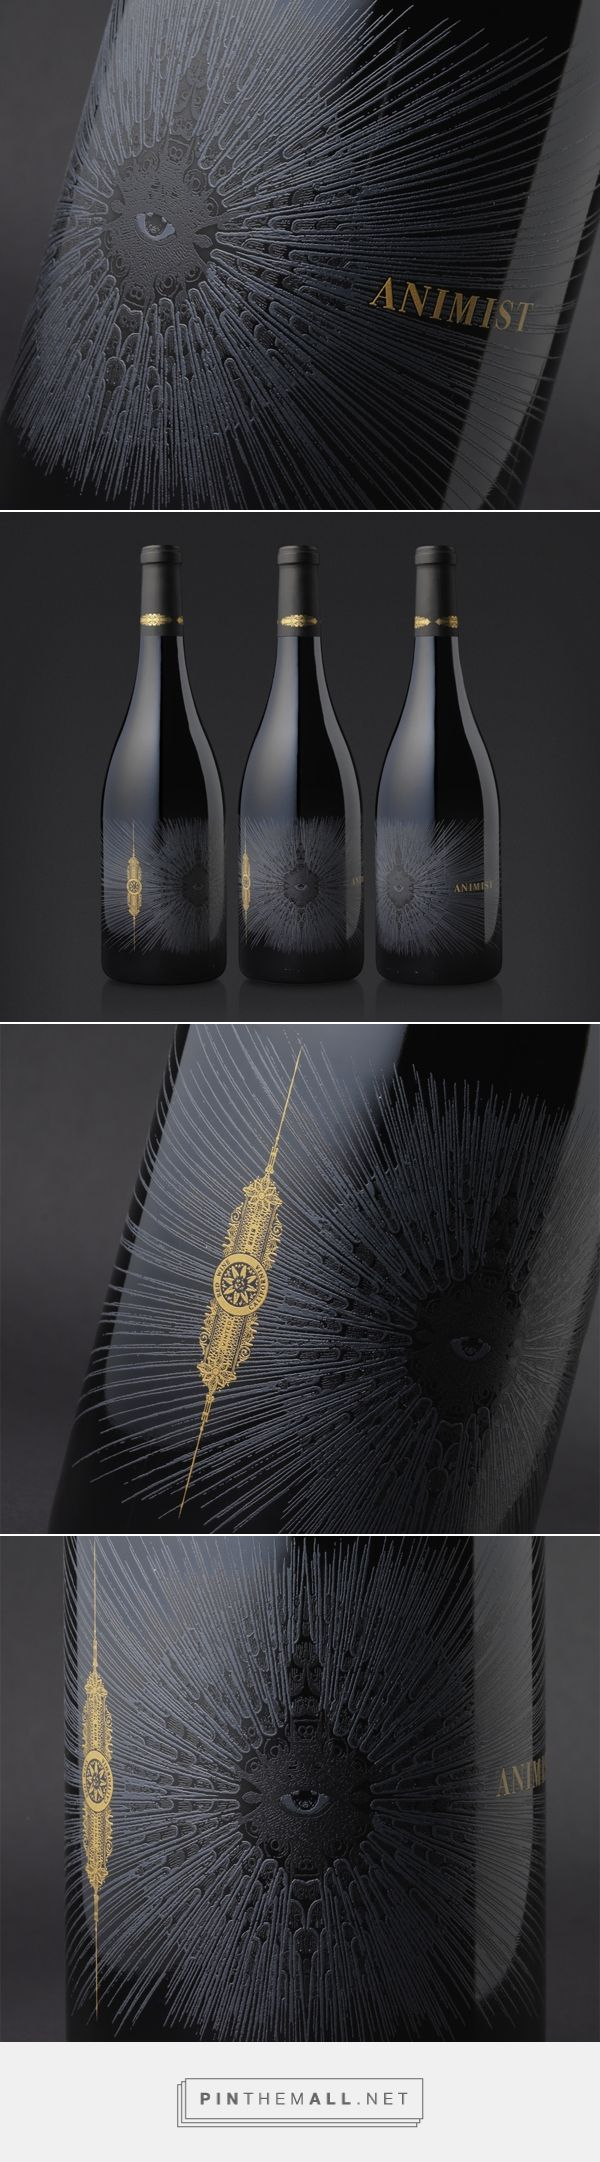 Animist Wine packaging by Cult Partners